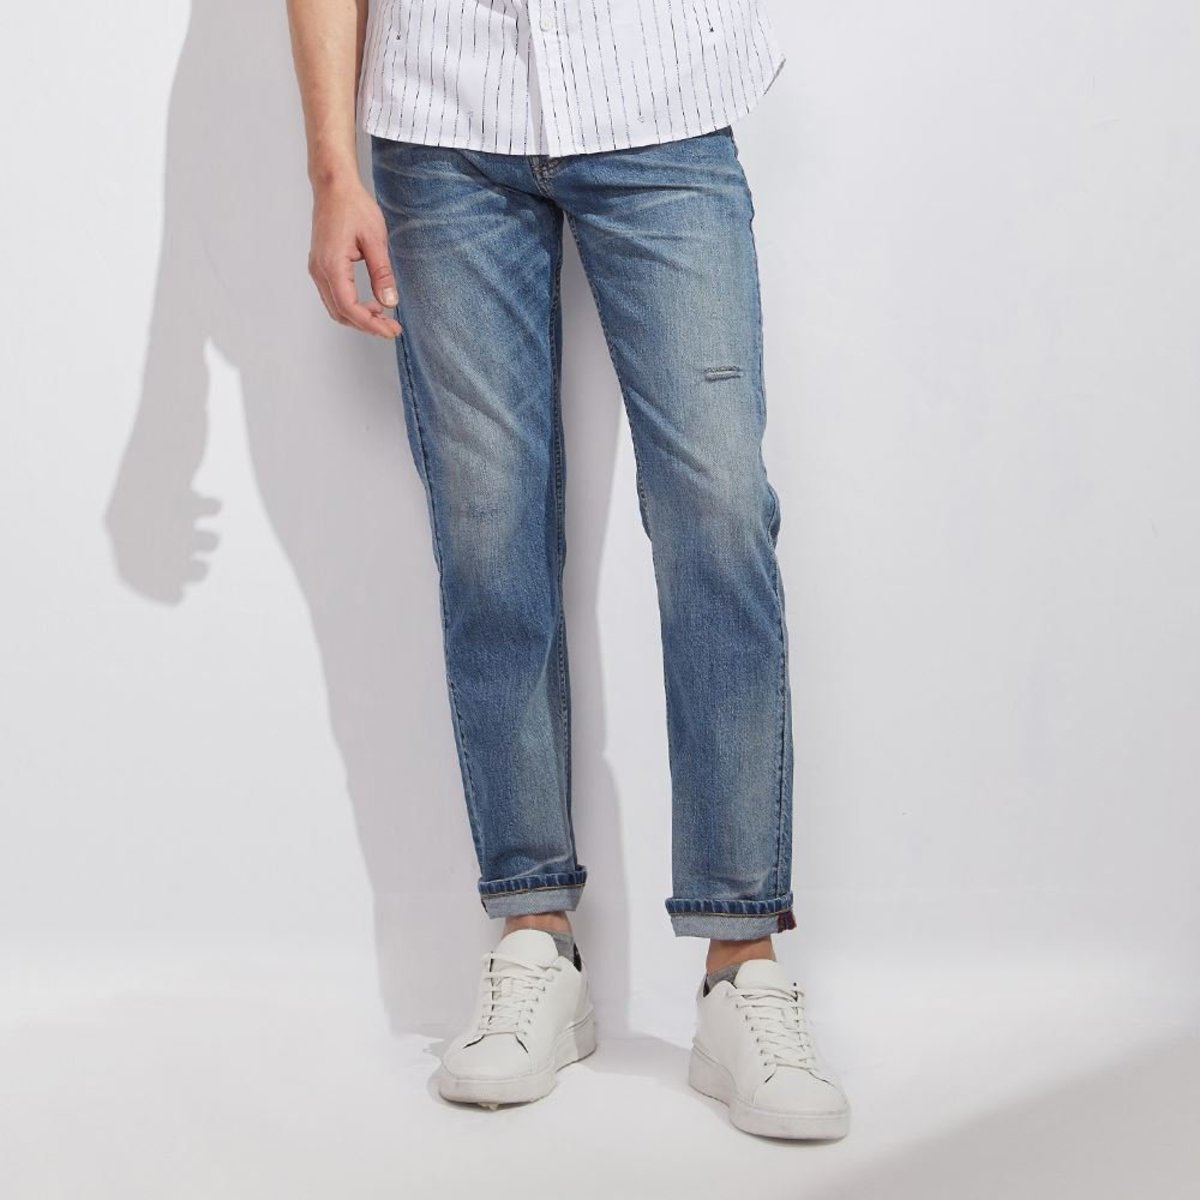 Men's Kaihara Modern Straight Jeans